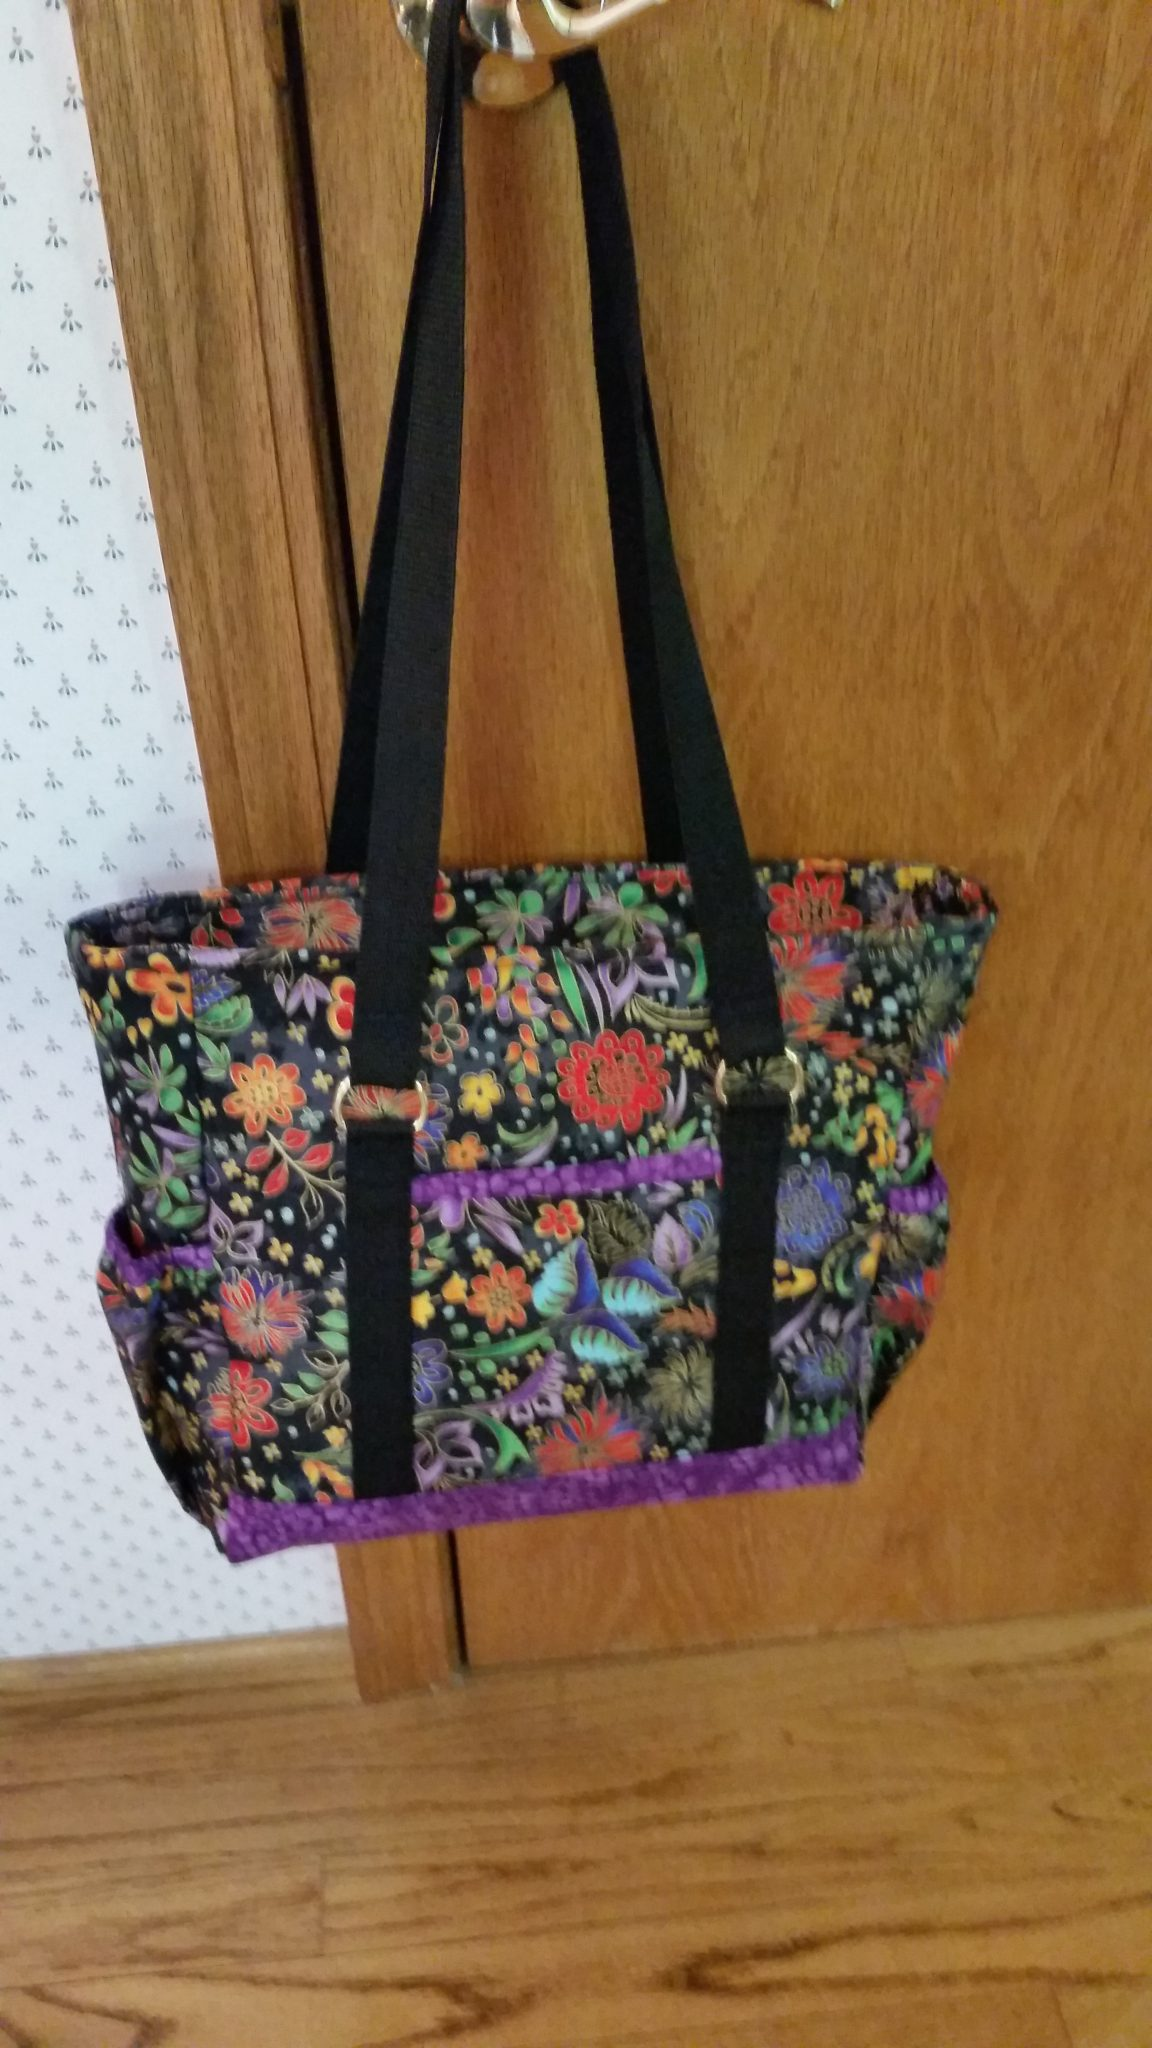 Lynn Edwards's Mini Professional Tote